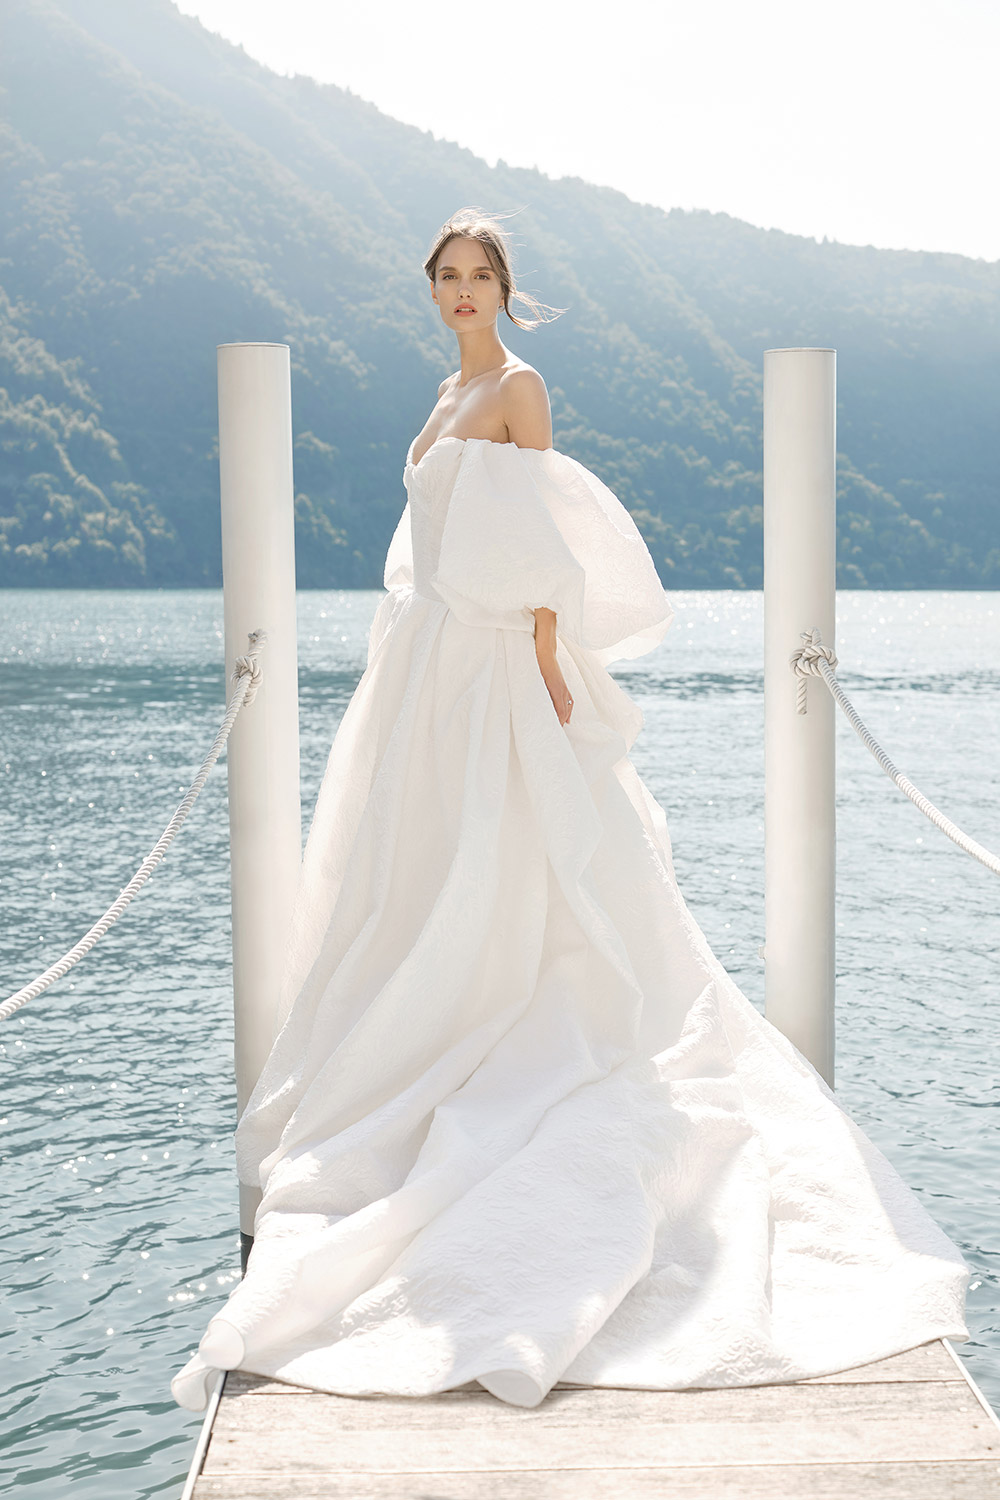 Theodora - Monique Lhuillier Fall 2020 Bridal Collection. www.theweddingnotebook.com